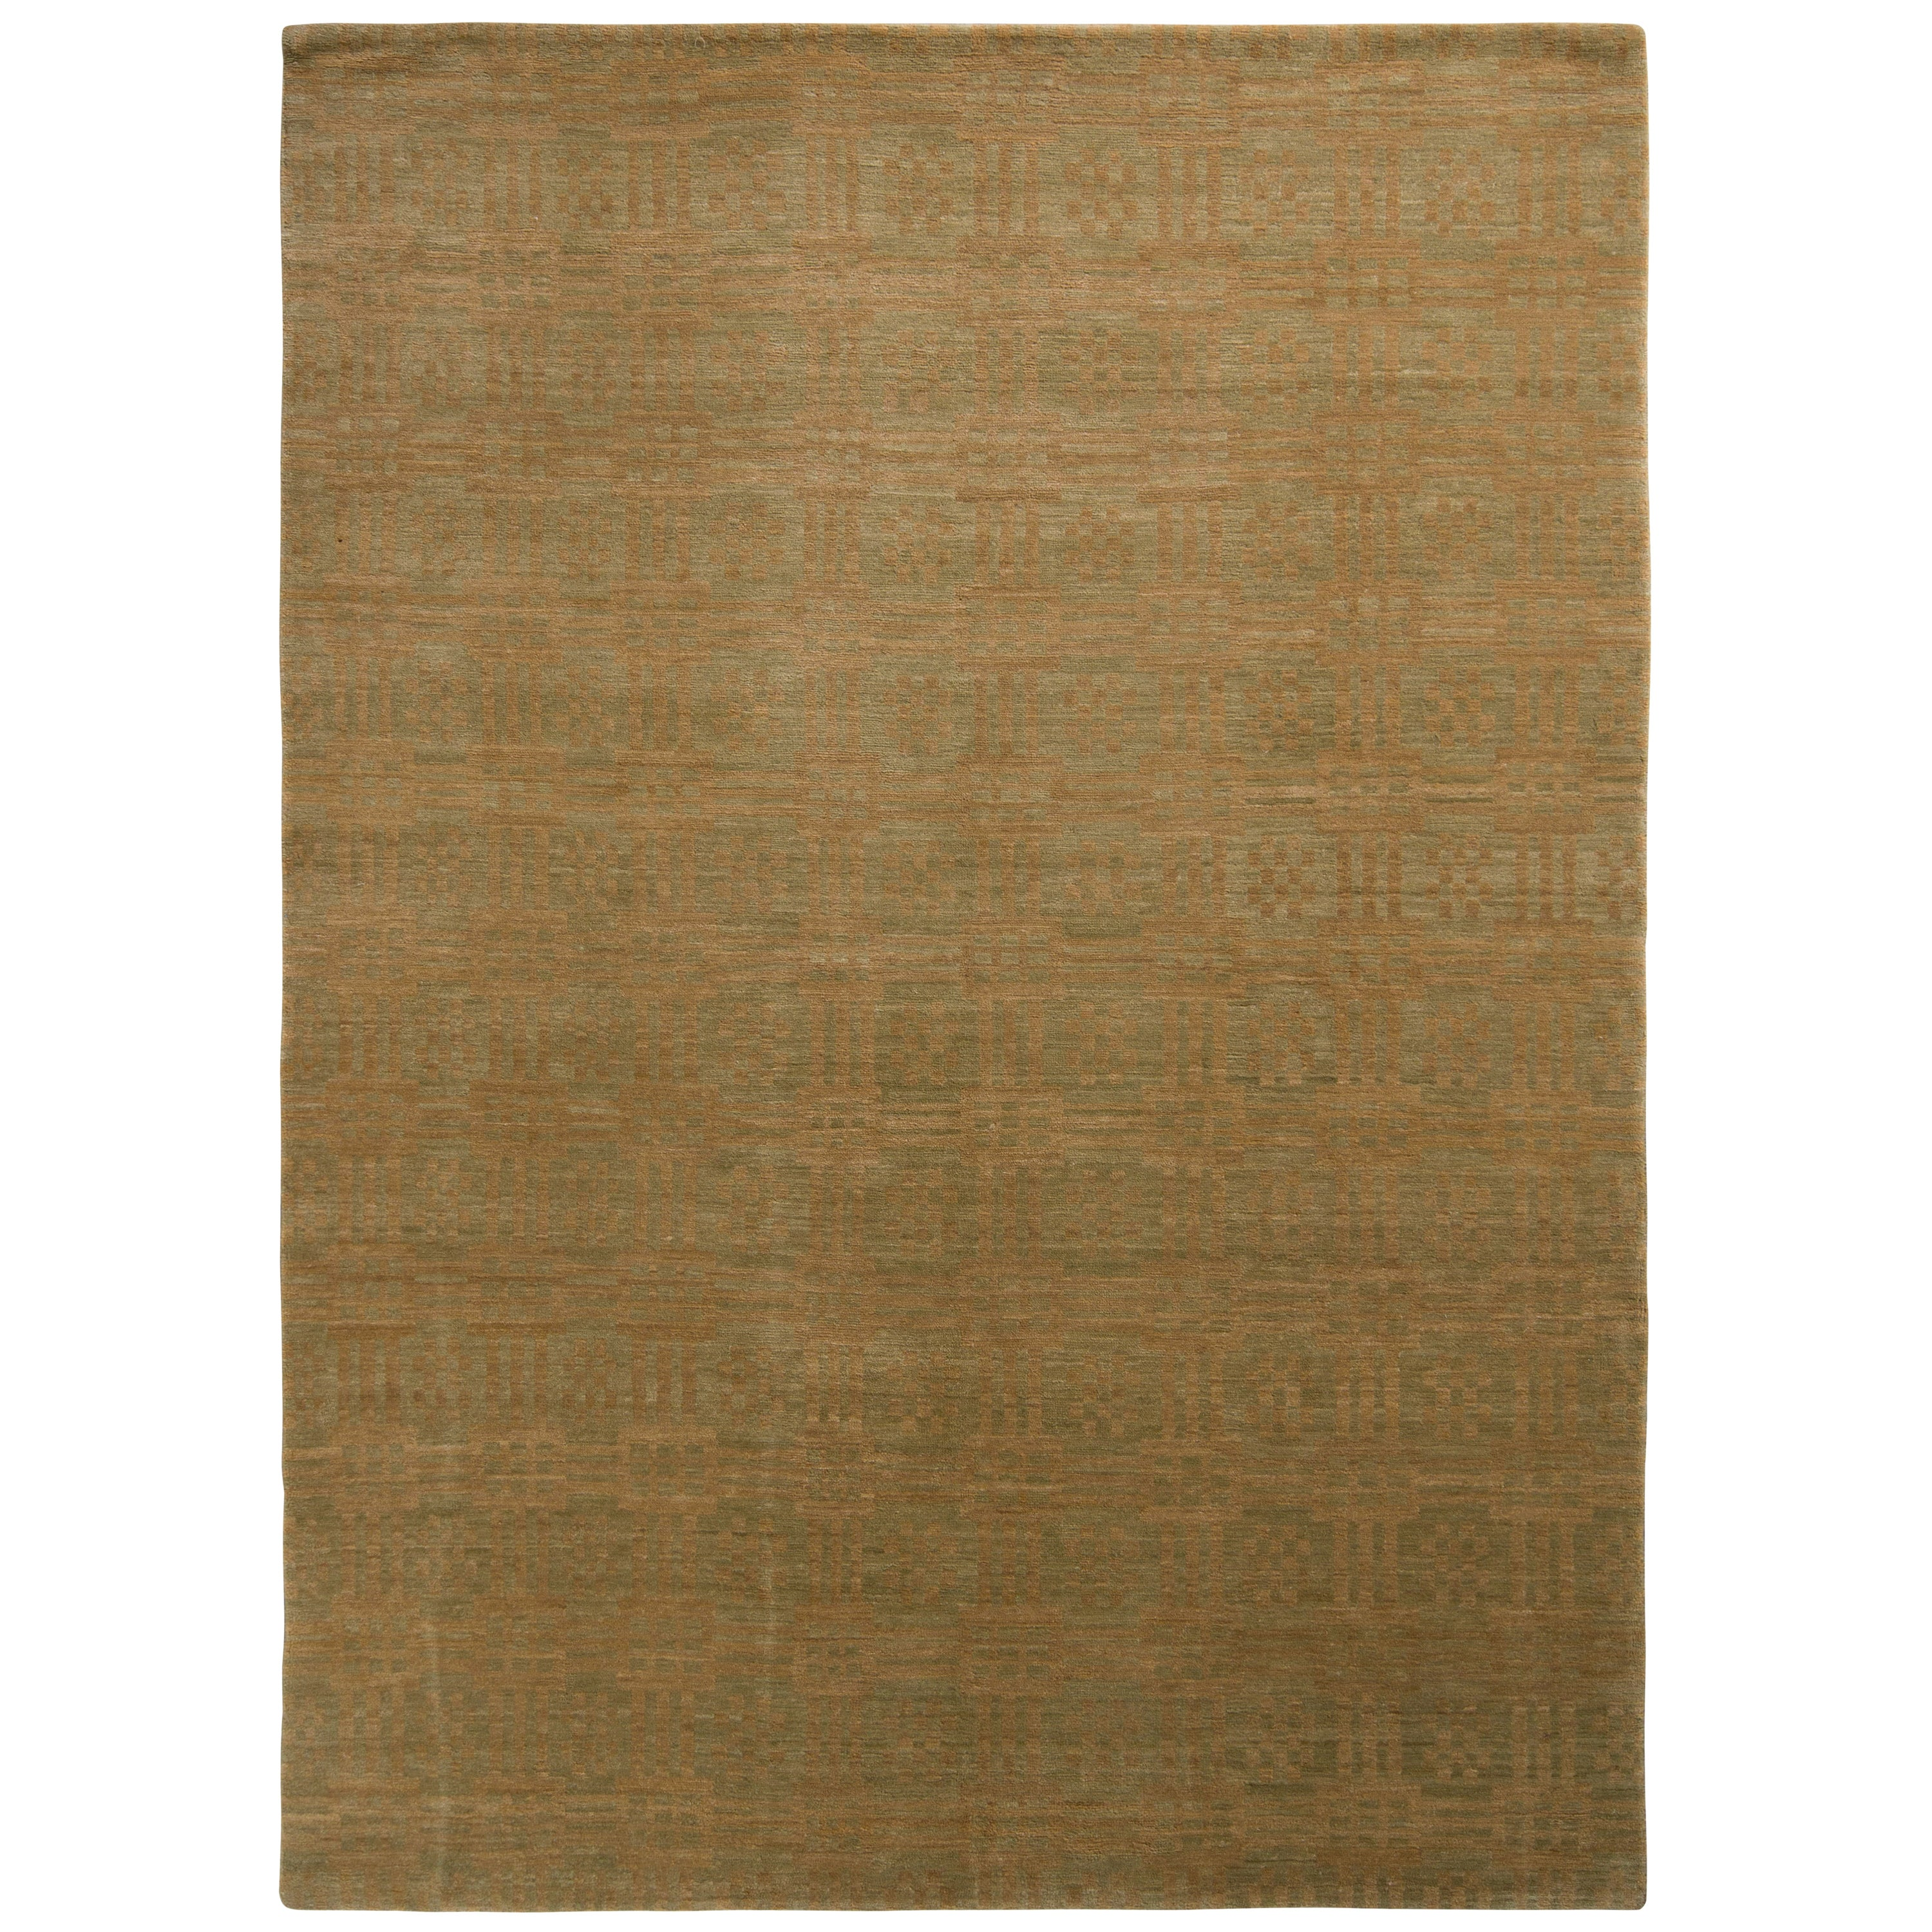 Rug & Kilim's Handmade Contemporary Rug in Green and Brown Geometric Pattern